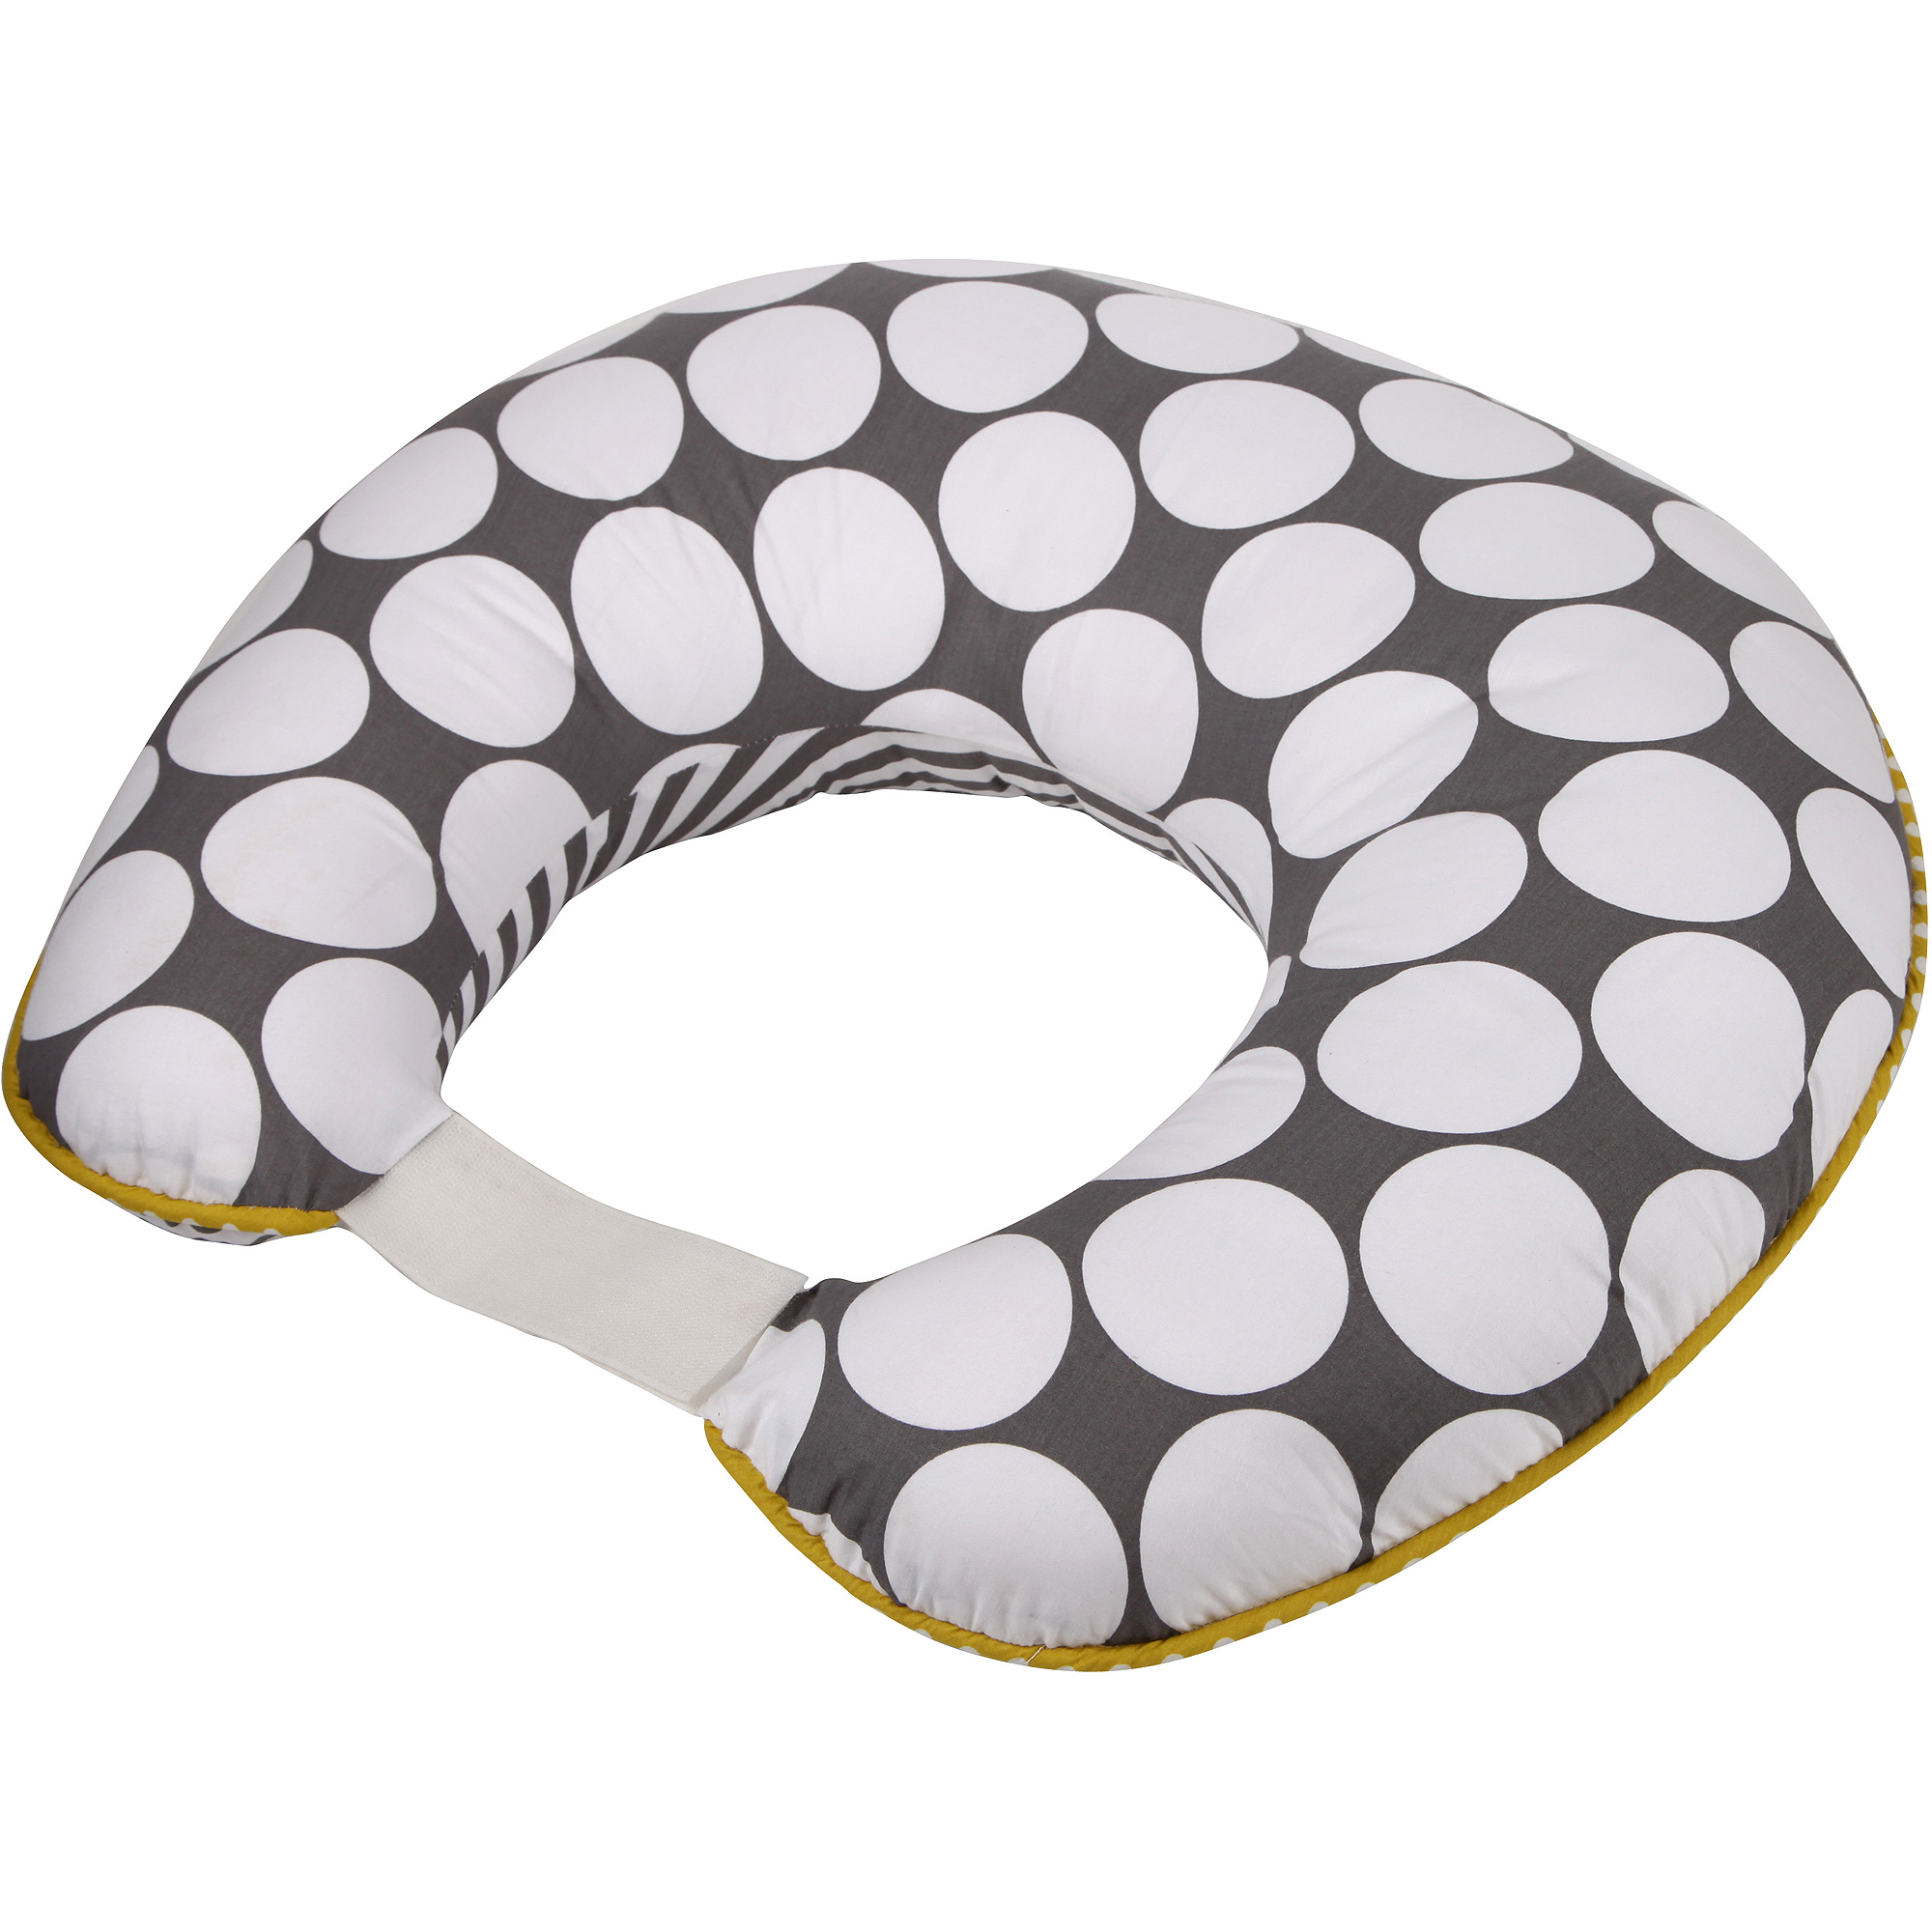 Bacati Dots/Pin Stripes Nursing Pillow, Gray/Yellow